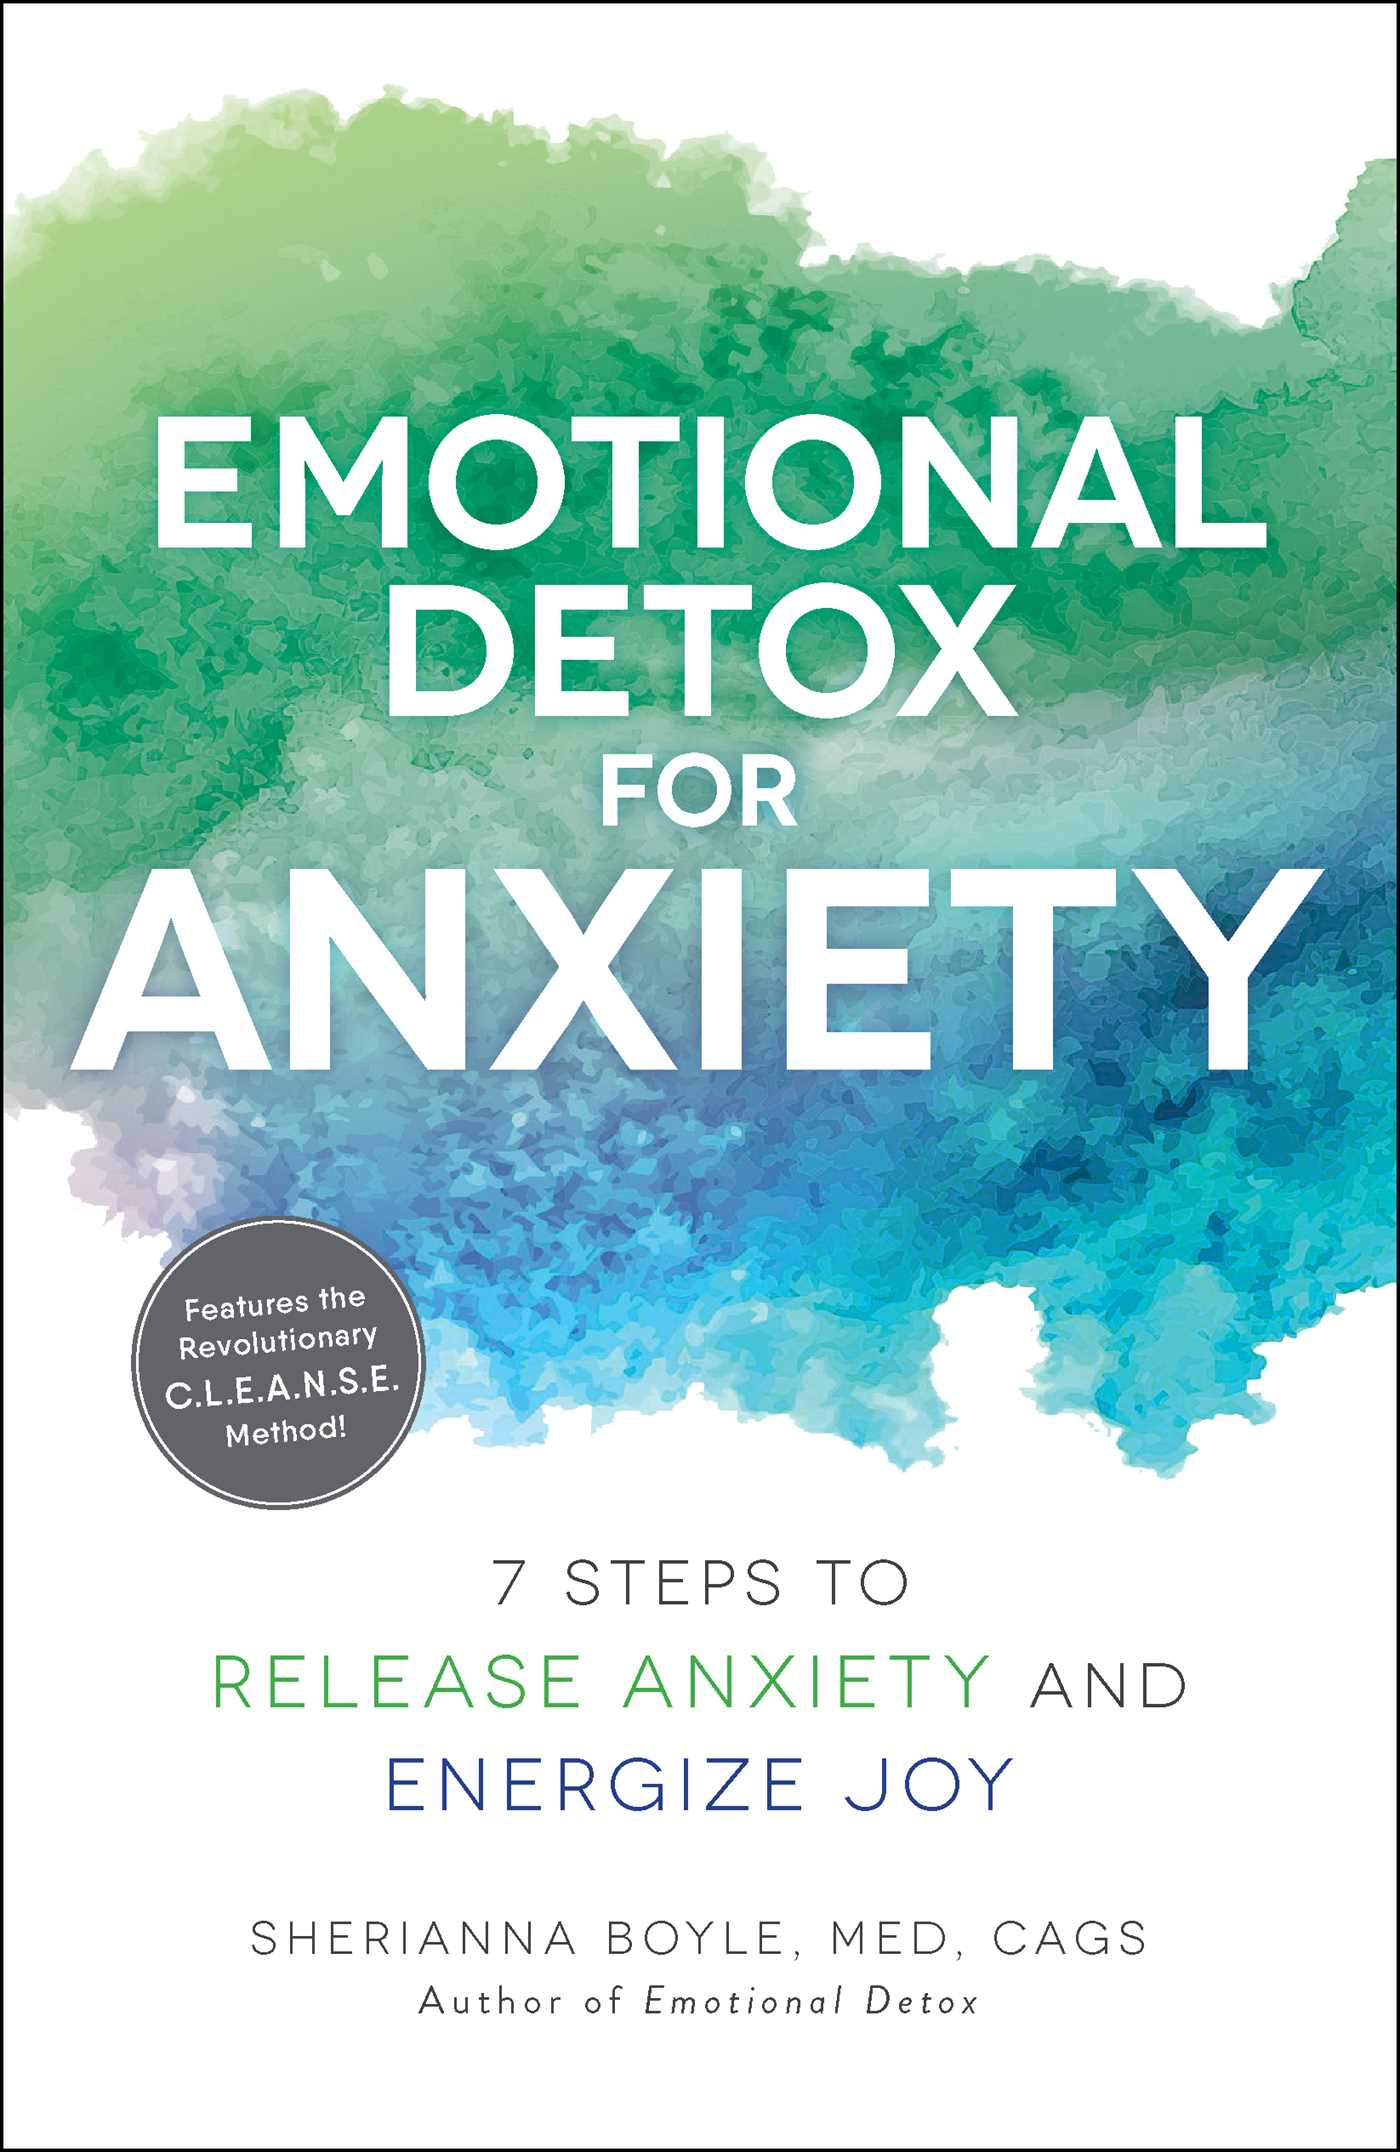 Emotional detox for anxiety [electronic resource (downloadable eBook)] : 7 steps to release anxiety and energize joy